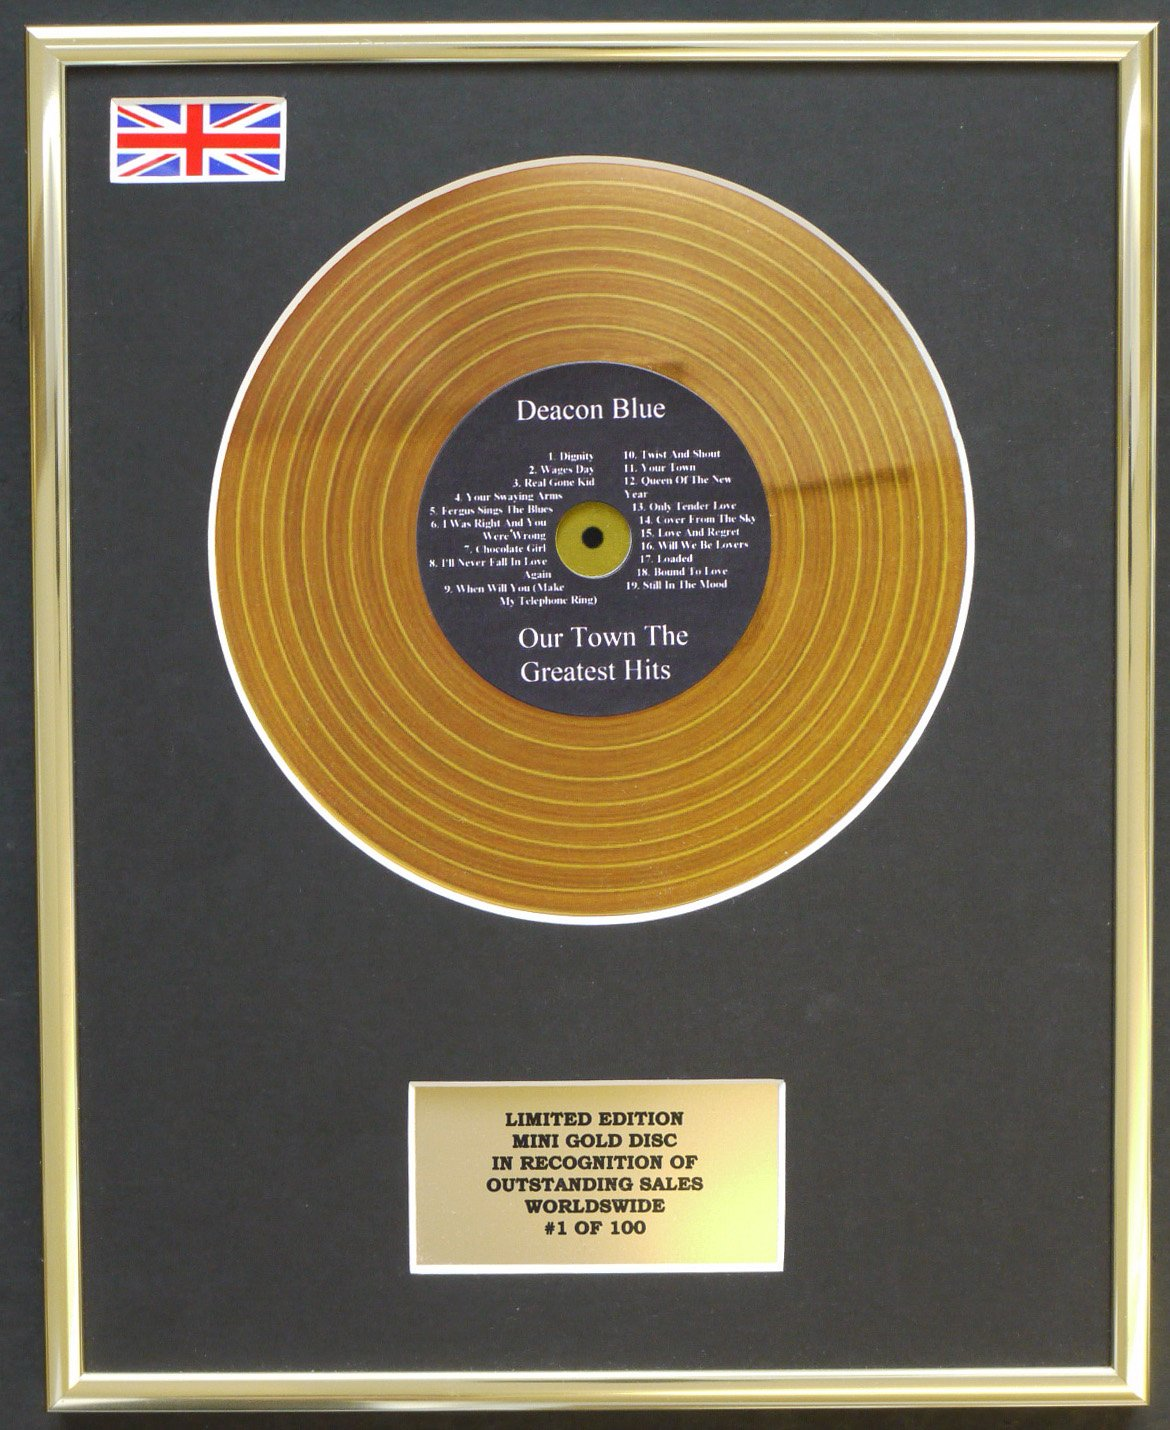 DEACON BLUE /MINI GOLD DISC DISPLAY/LIMITED EDITION/COA/ OUR TOWN THE GREATEST HITS Everythingcollectible